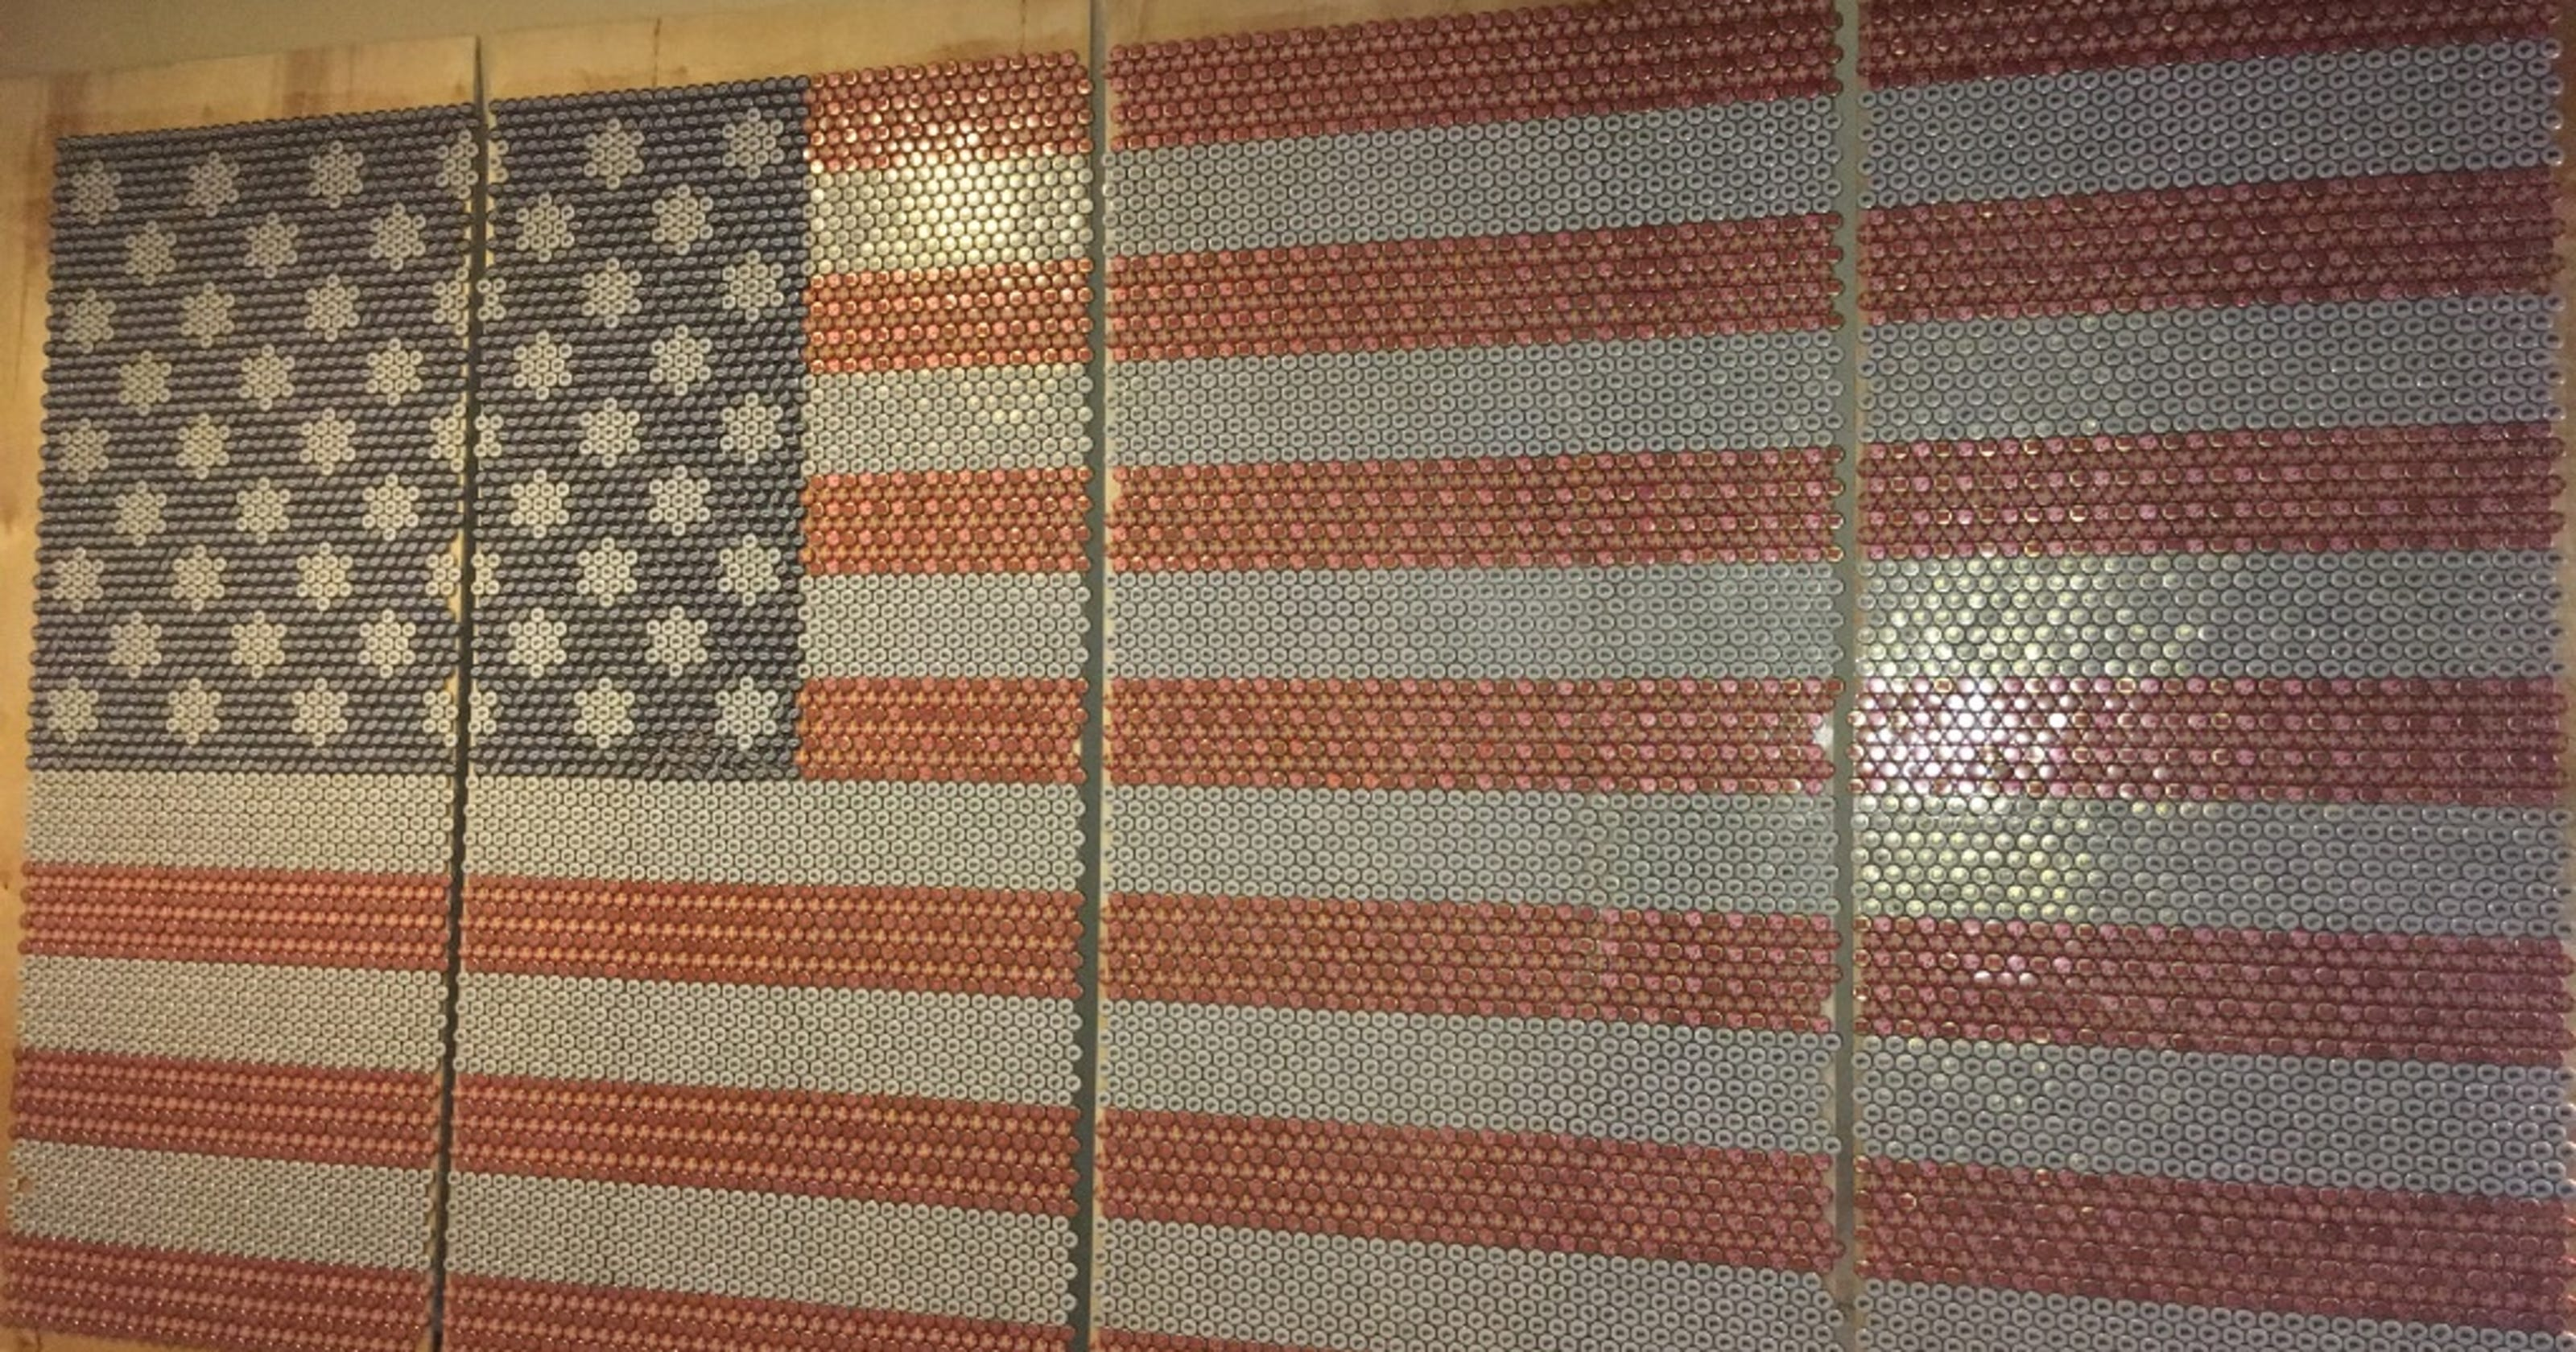 Man recycles bottle caps to create an 8-foot-tall American flag